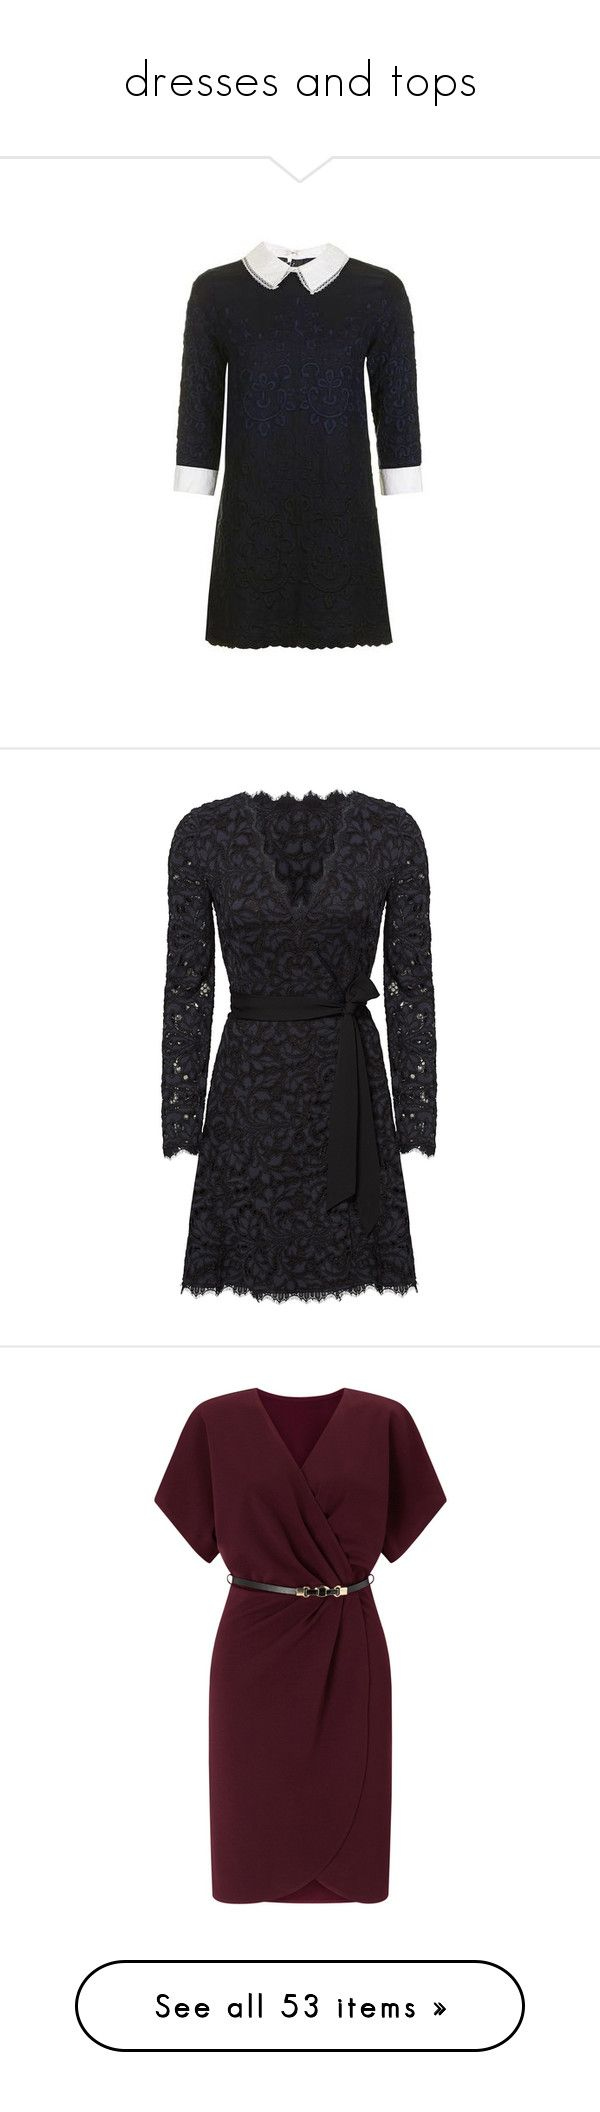 """""""dresses and tops"""" by peeweevaaz ❤ liked on Polyvore featuring dresses, navy blue, navy shift dress, rayon dress, viscose dresses, navy blue dress, petite dresses, long sleeve dress, v-neck dresses and long sleeve lace dress"""